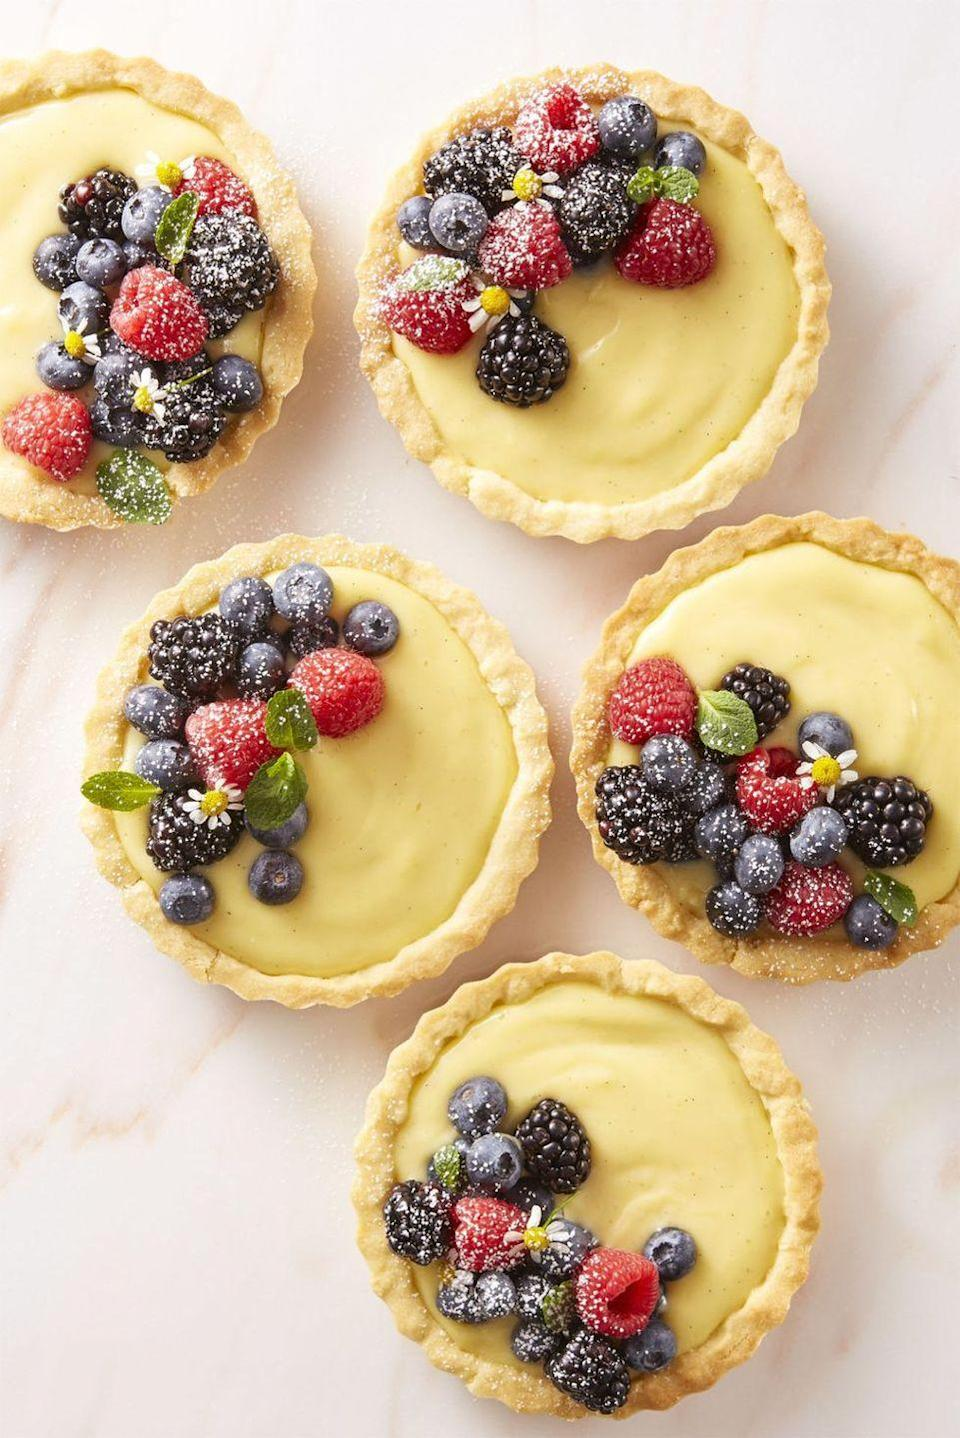 """<p>Toasted sliced almonds at the bottom of every tart give a surprising, crunchy contrast to each creamy bite. </p><p><em><a href=""""https://www.goodhousekeeping.com/food-recipes/dessert/a43667/very-berry-cream-tartlets-recipe/"""" rel=""""nofollow noopener"""" target=""""_blank"""" data-ylk=""""slk:Get the recipe for Very Berry Cream Tartlets »"""" class=""""link rapid-noclick-resp"""">Get the recipe for Very Berry Cream Tartlets »</a></em></p>"""